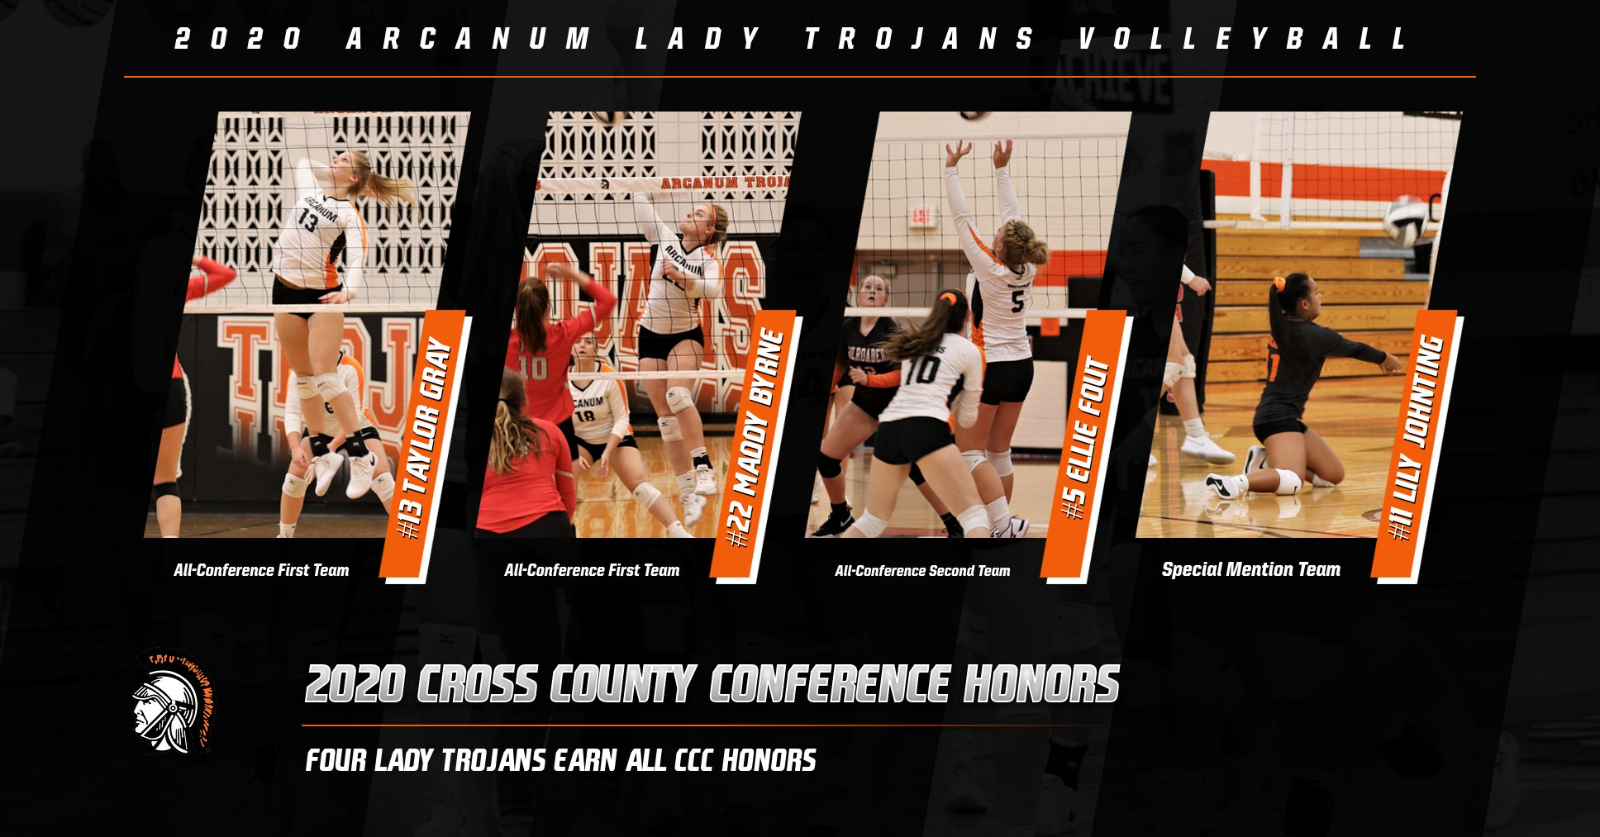 2020 CCC All-Conference Volleyball Honors